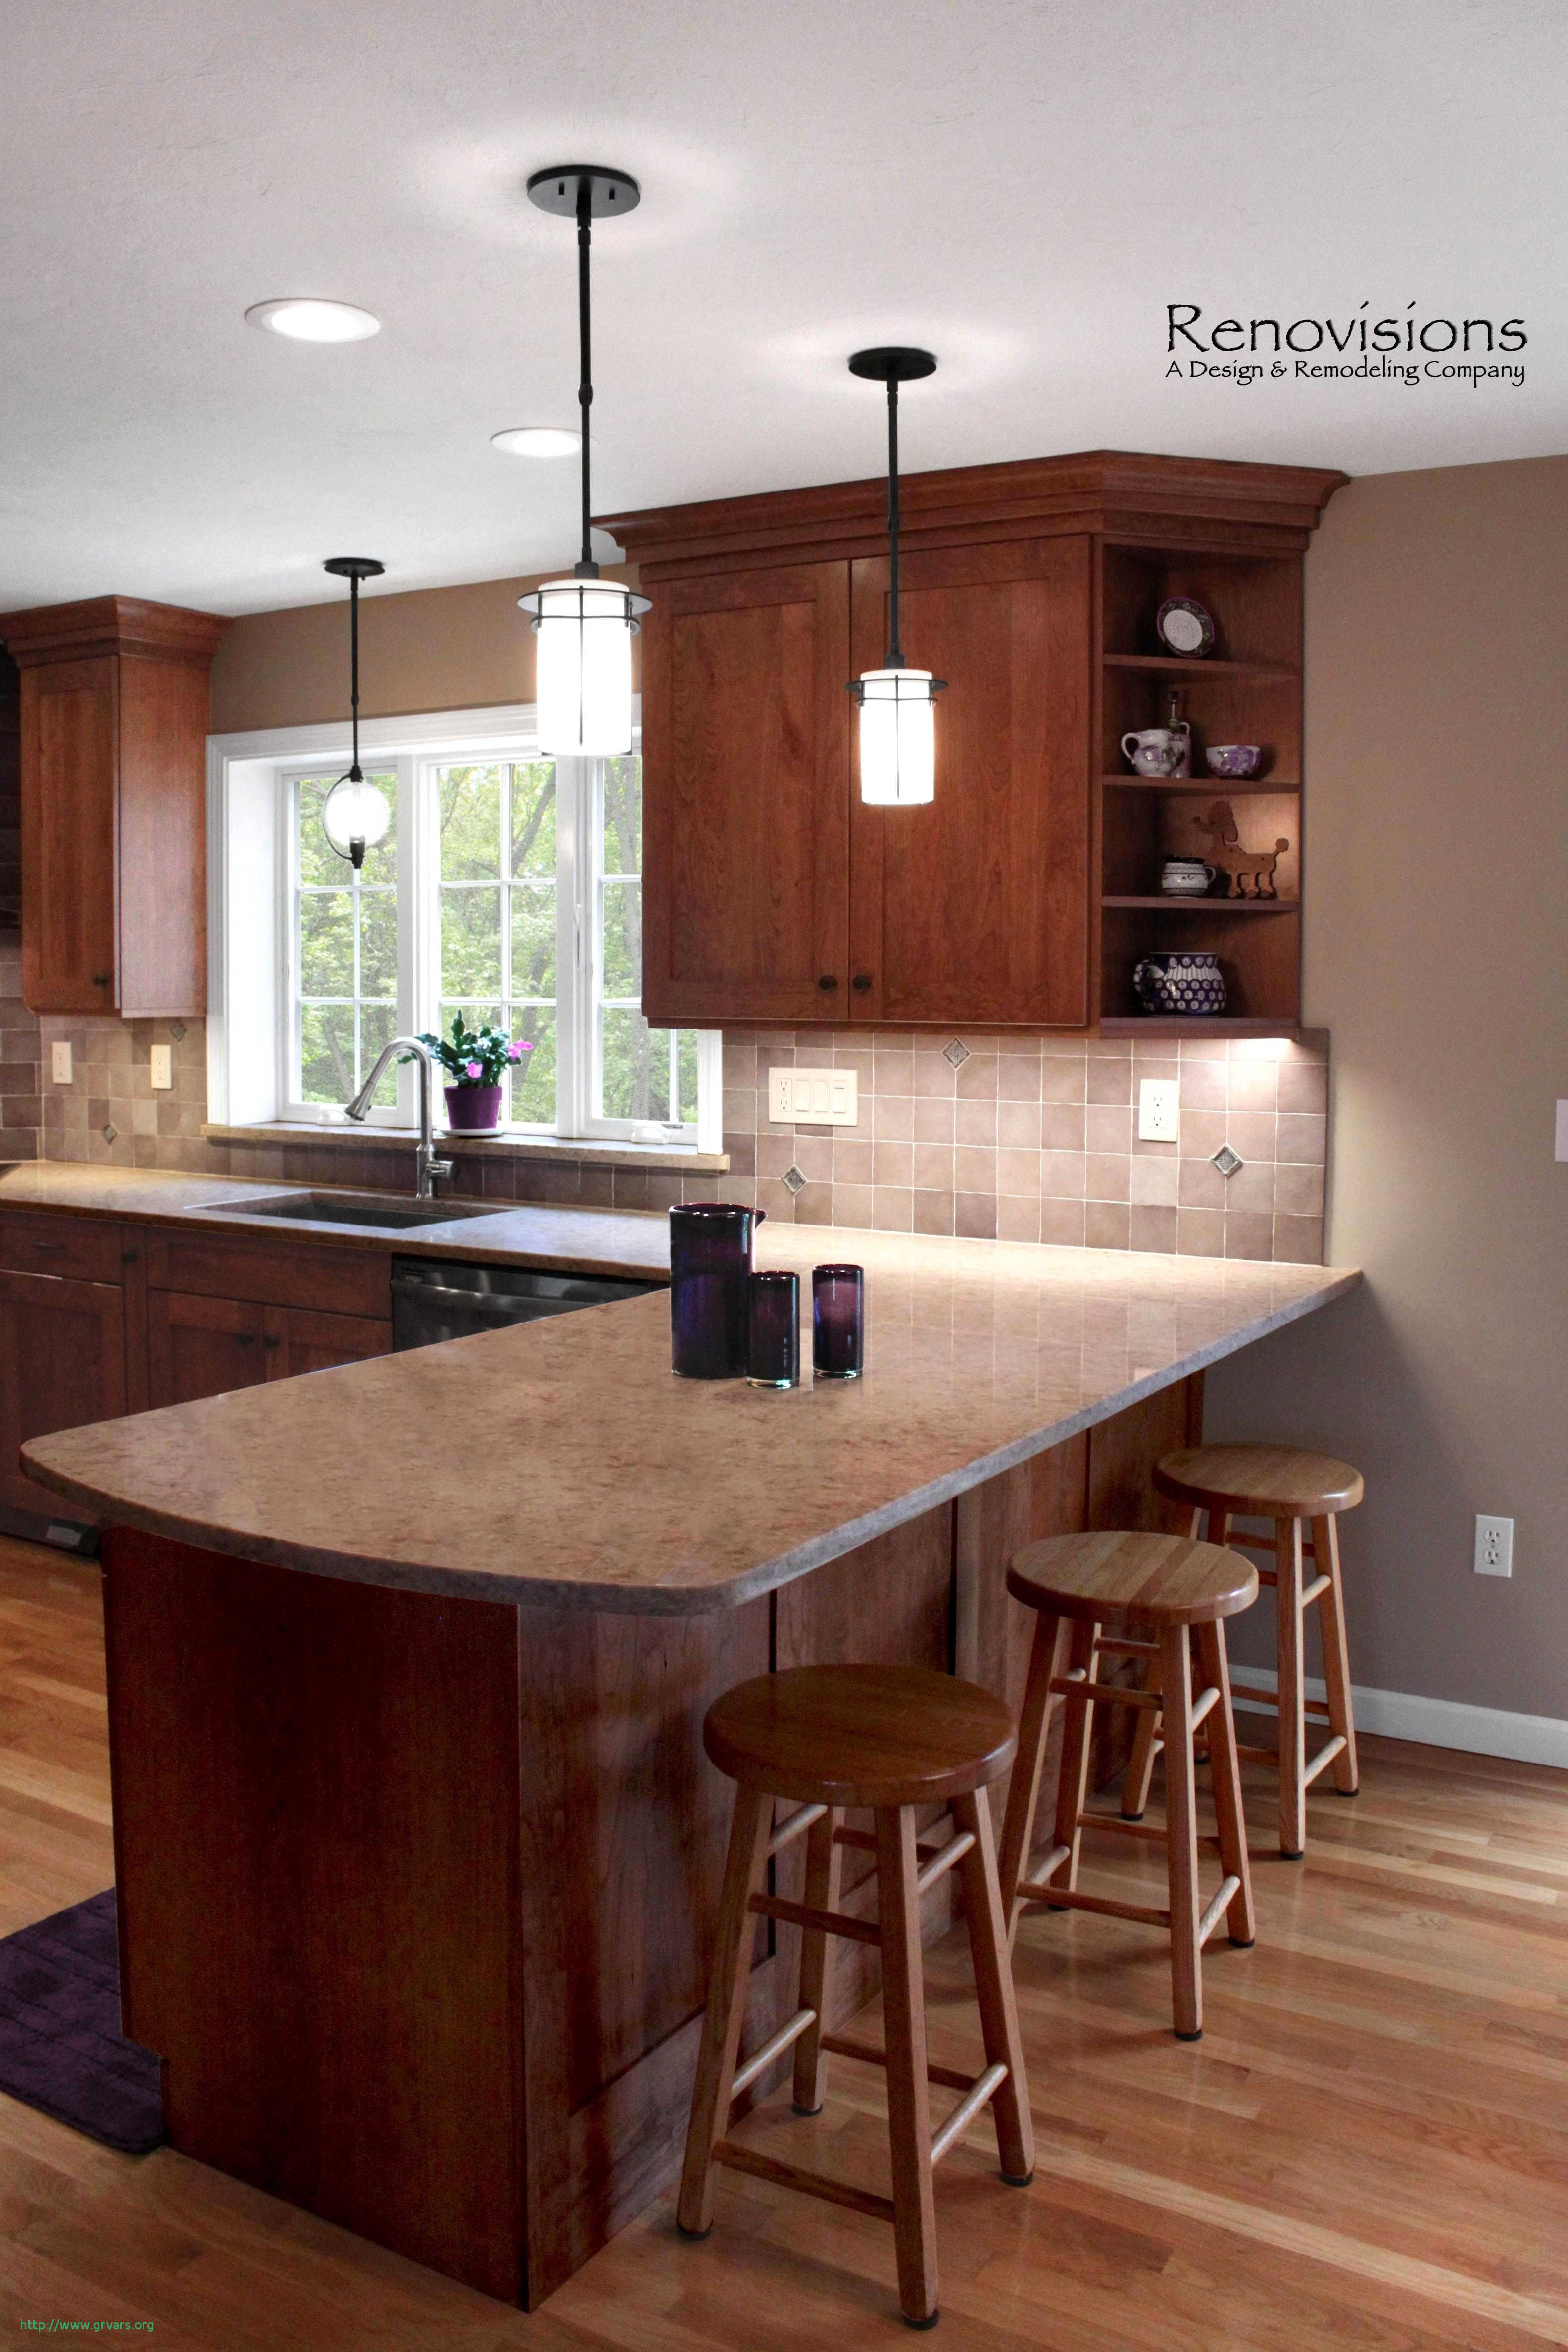 hardwood floor and cabinet color matching of 17 meilleur de what color cabinets go with light wood floors ideas with regard to quality kitchen cabinets best colors for kitchen cabinets unique kitchen cabinet 0d kitchen sink